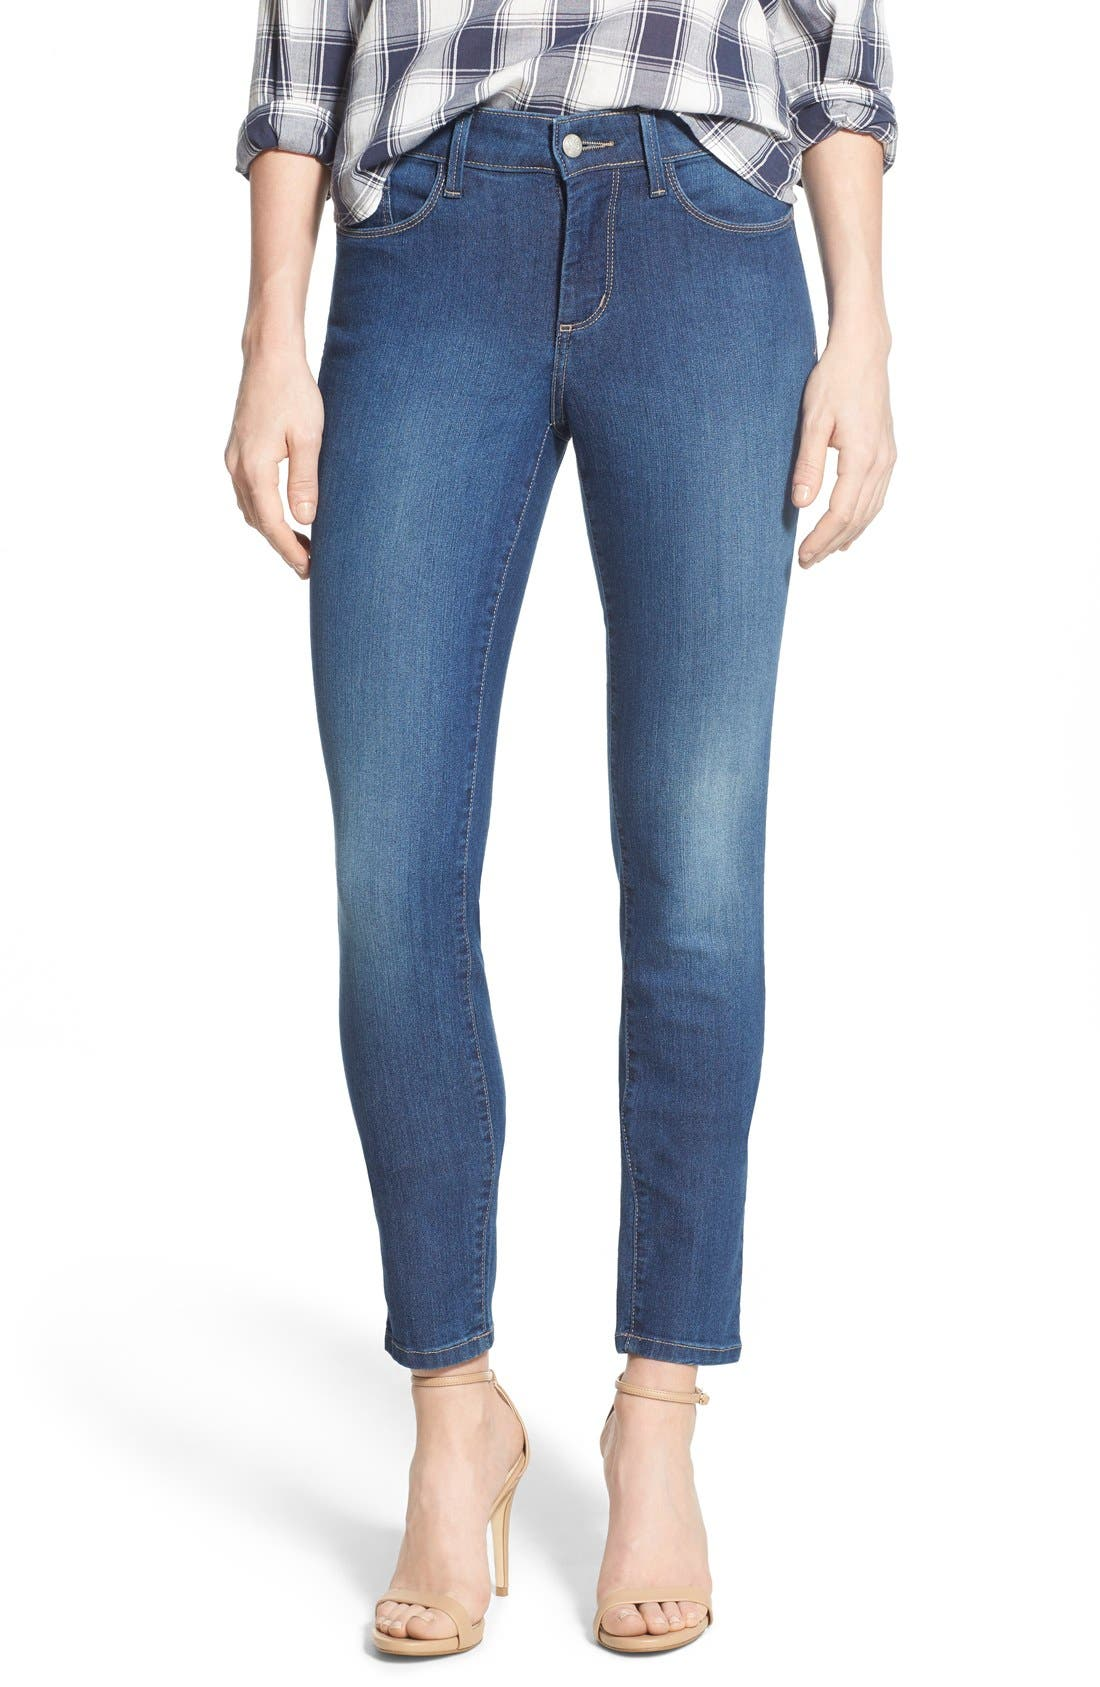 Ami Stretch Skinny Jeans,                             Main thumbnail 1, color,                             423